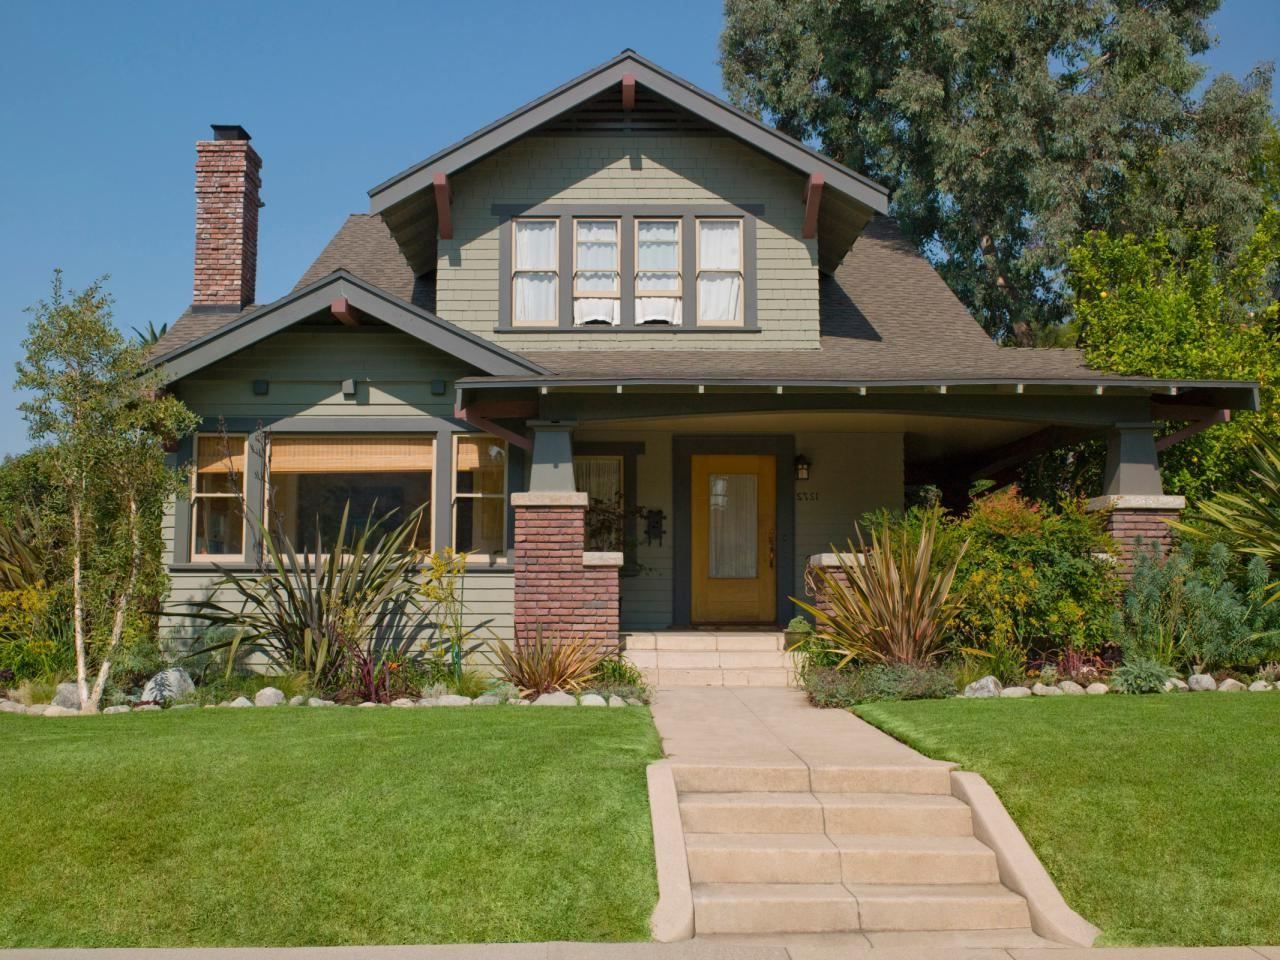 Craftsman Home Exterior Paint Colors Tune Wallpaper Deep Red Brick House Painting Cost Brown